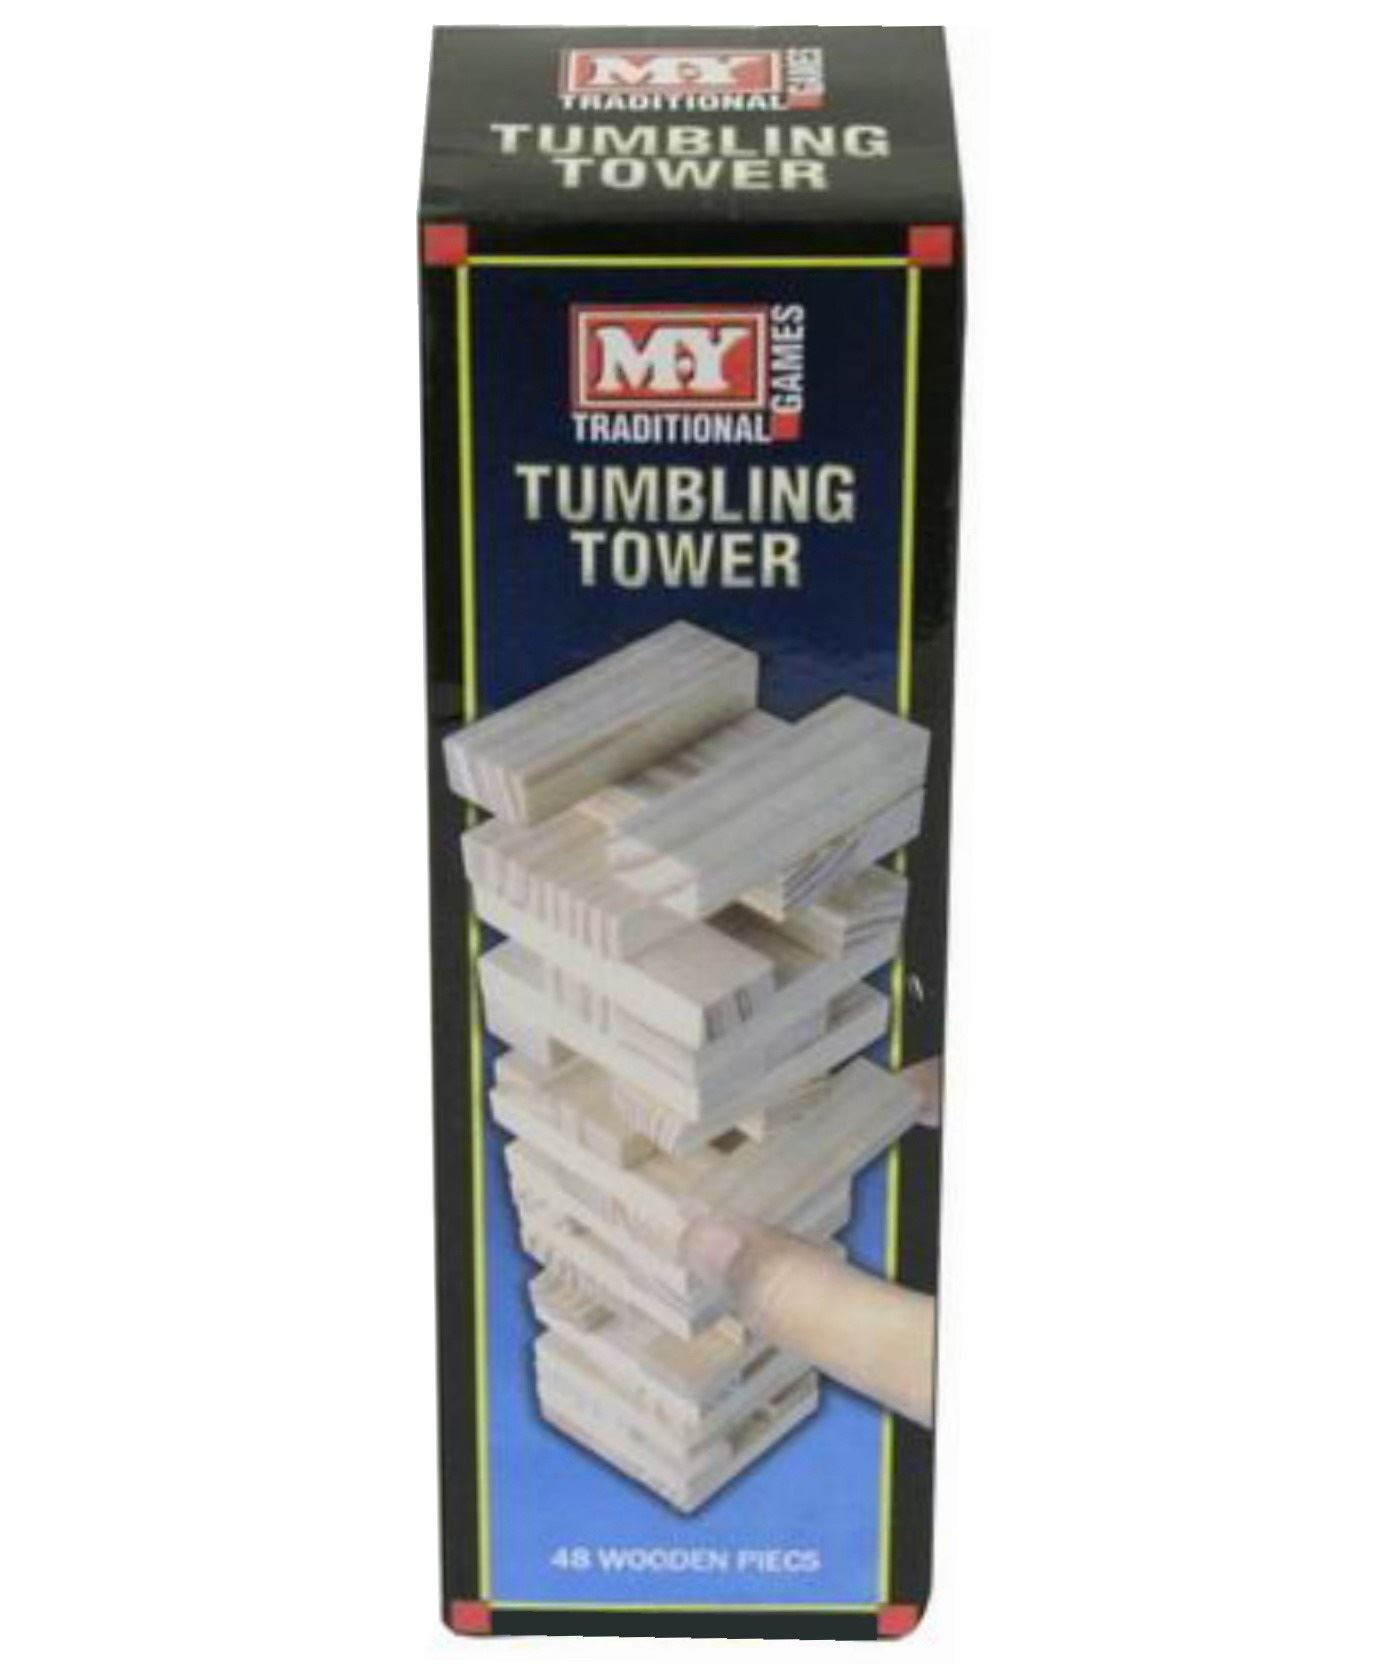 Tumbling Tower Mini to Giant Wooden Stacking Block Tower Classic Family Fun Game